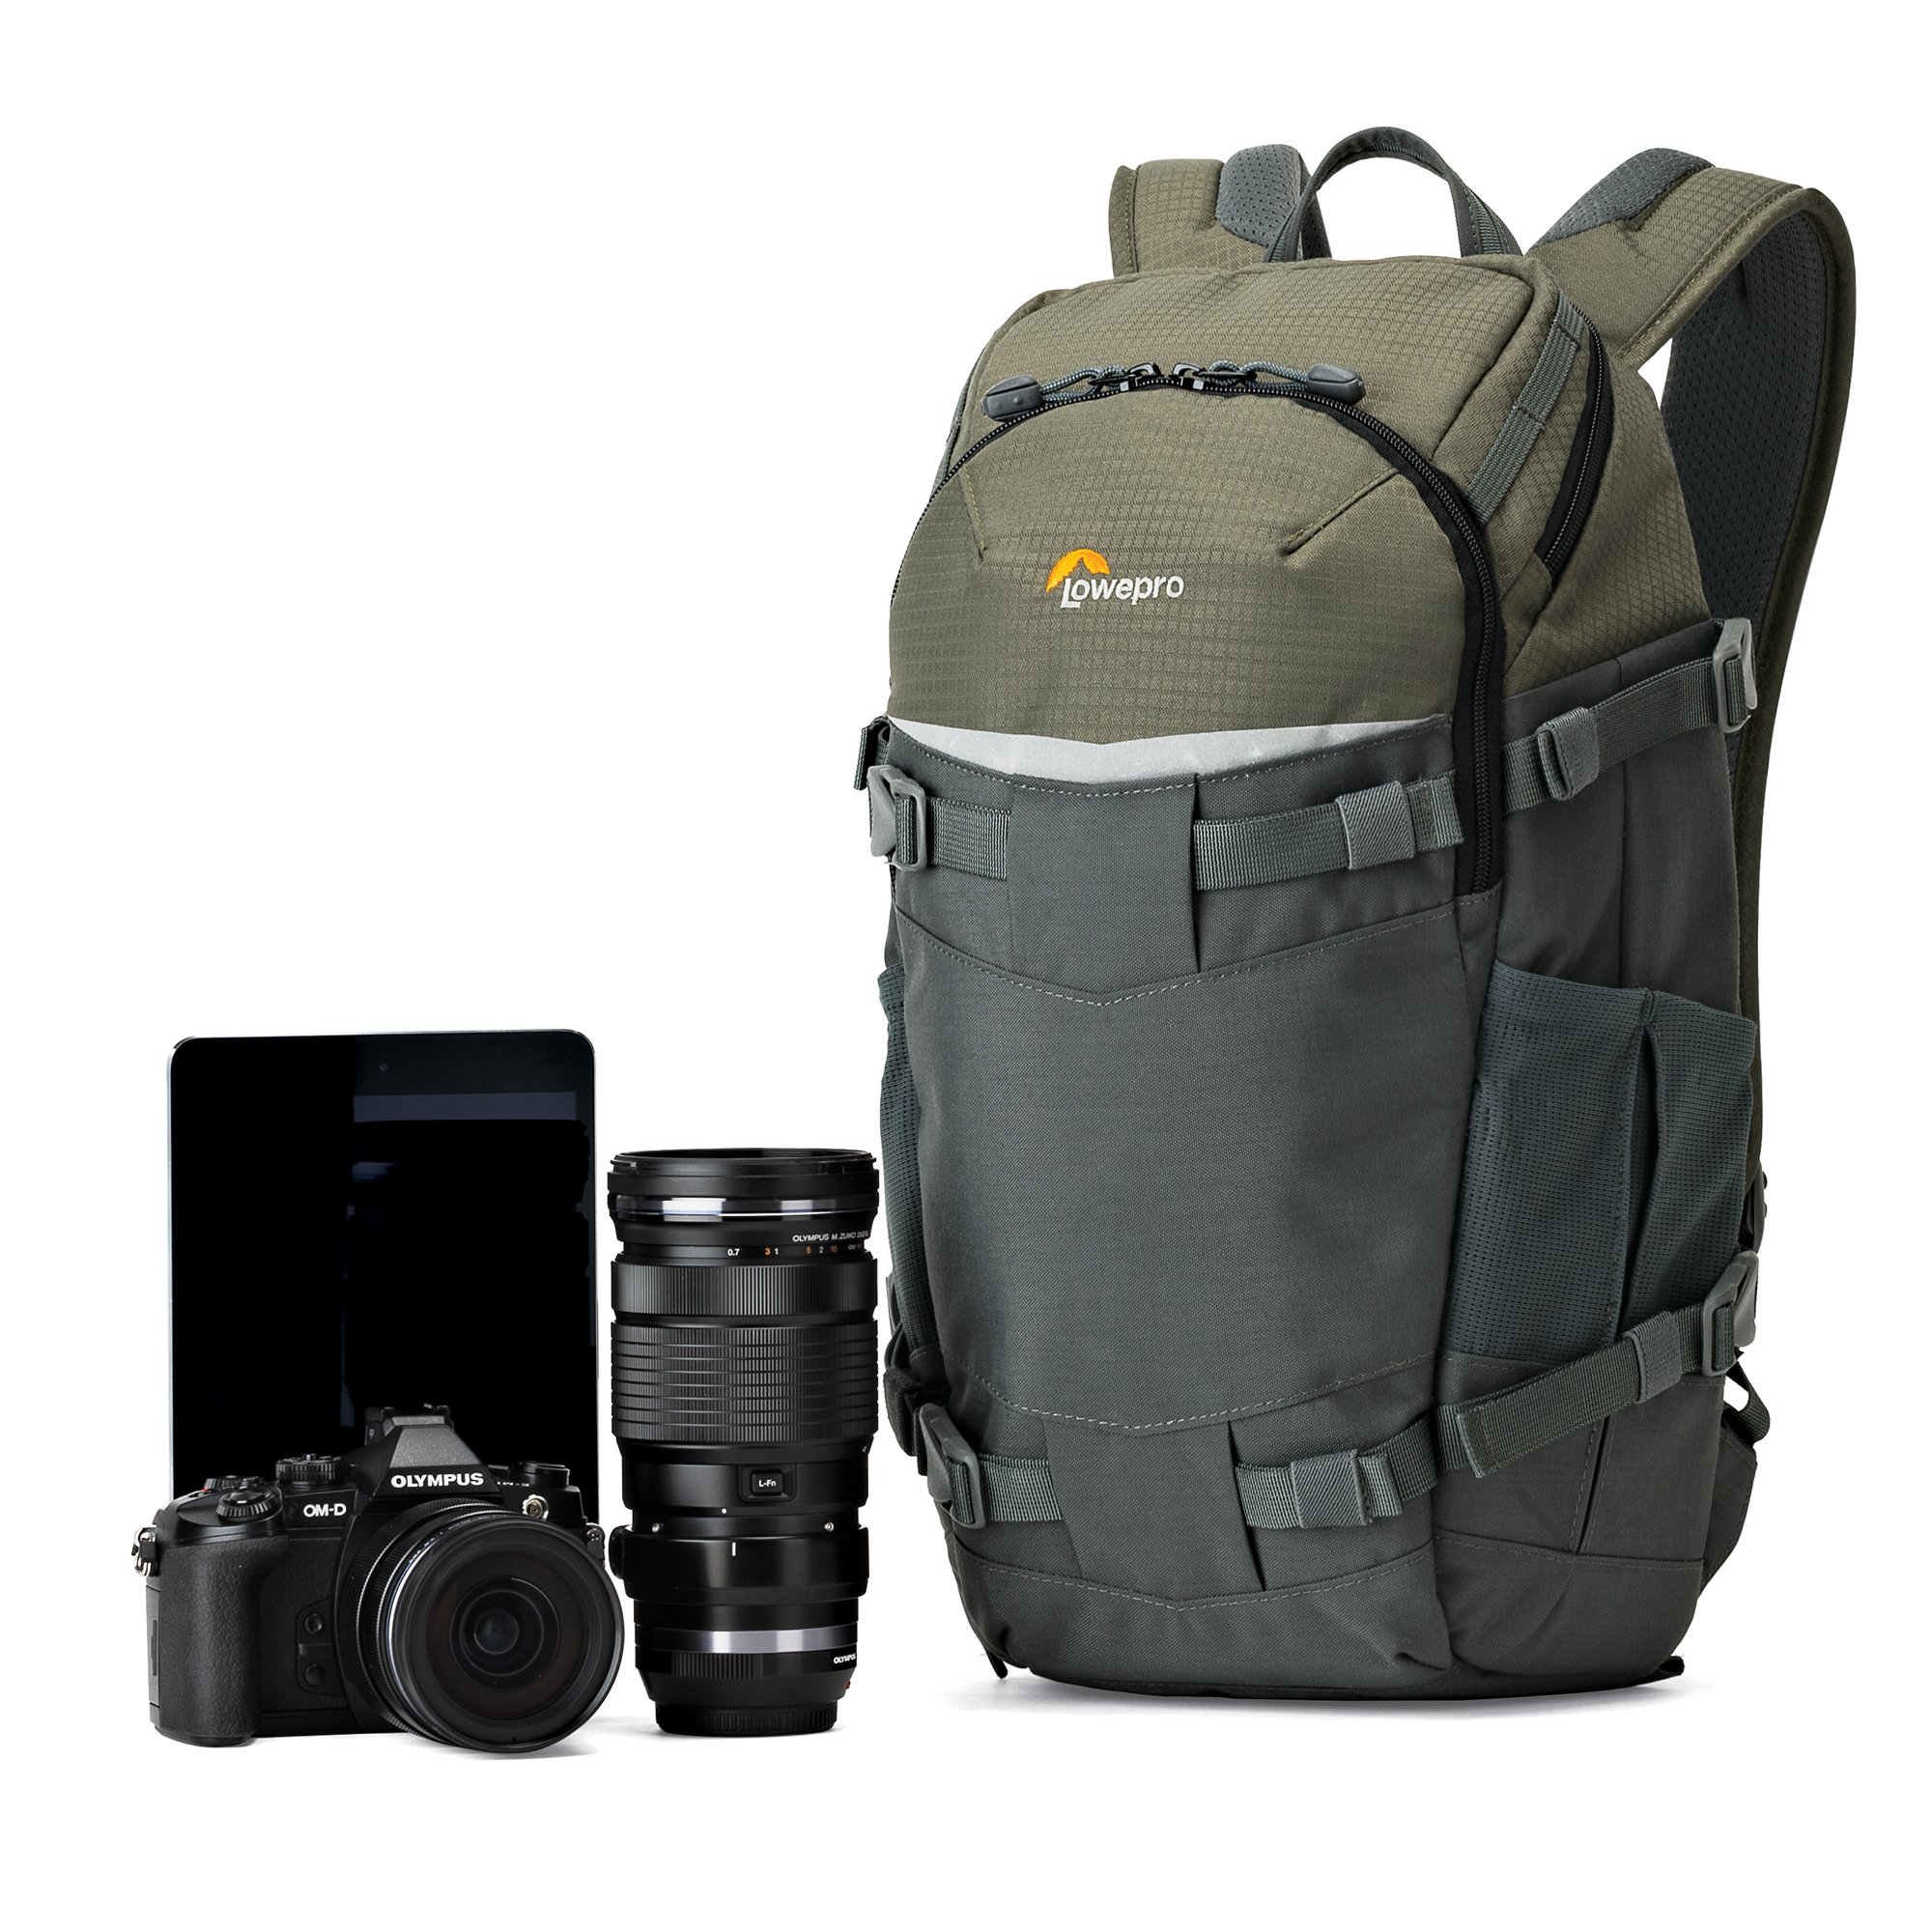 Lowepro Flipside Trek BP 250 AW - Outdoor Camera Backpack for Mirrorless or Compact DSLR w/ Rain Cover and Tablet Pocket. by Lowepro (Image #3)